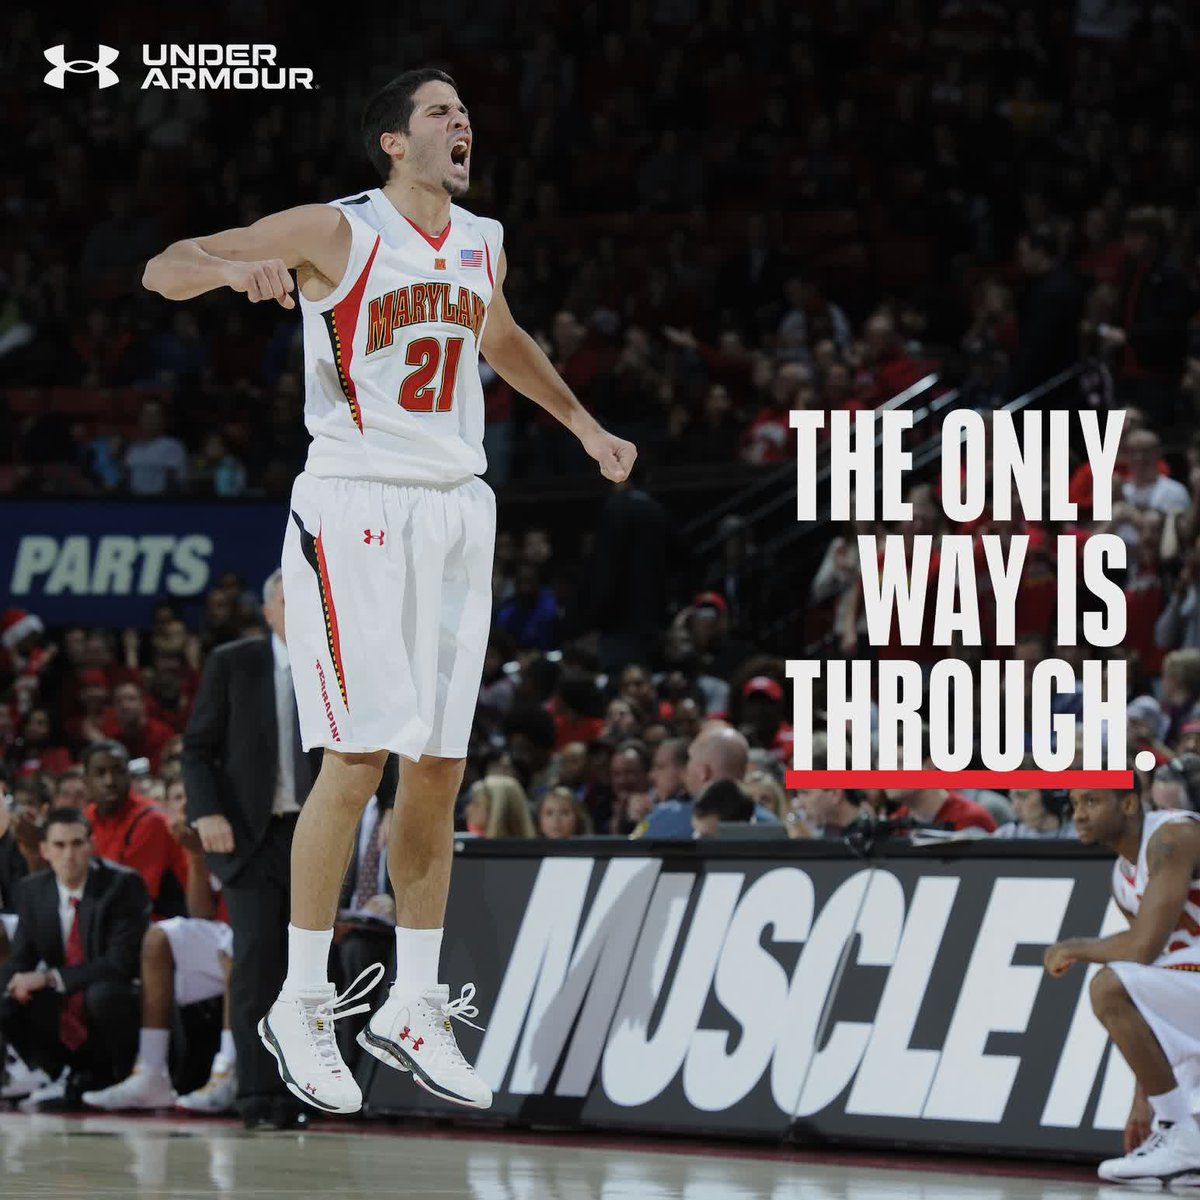 He came from Caracas with a dream He left College Park as a legend   @greivisvasquez embodies the motto    #TheOnlyWayIsThrough | @UnderArmour<br>http://pic.twitter.com/oyadbRWkCa